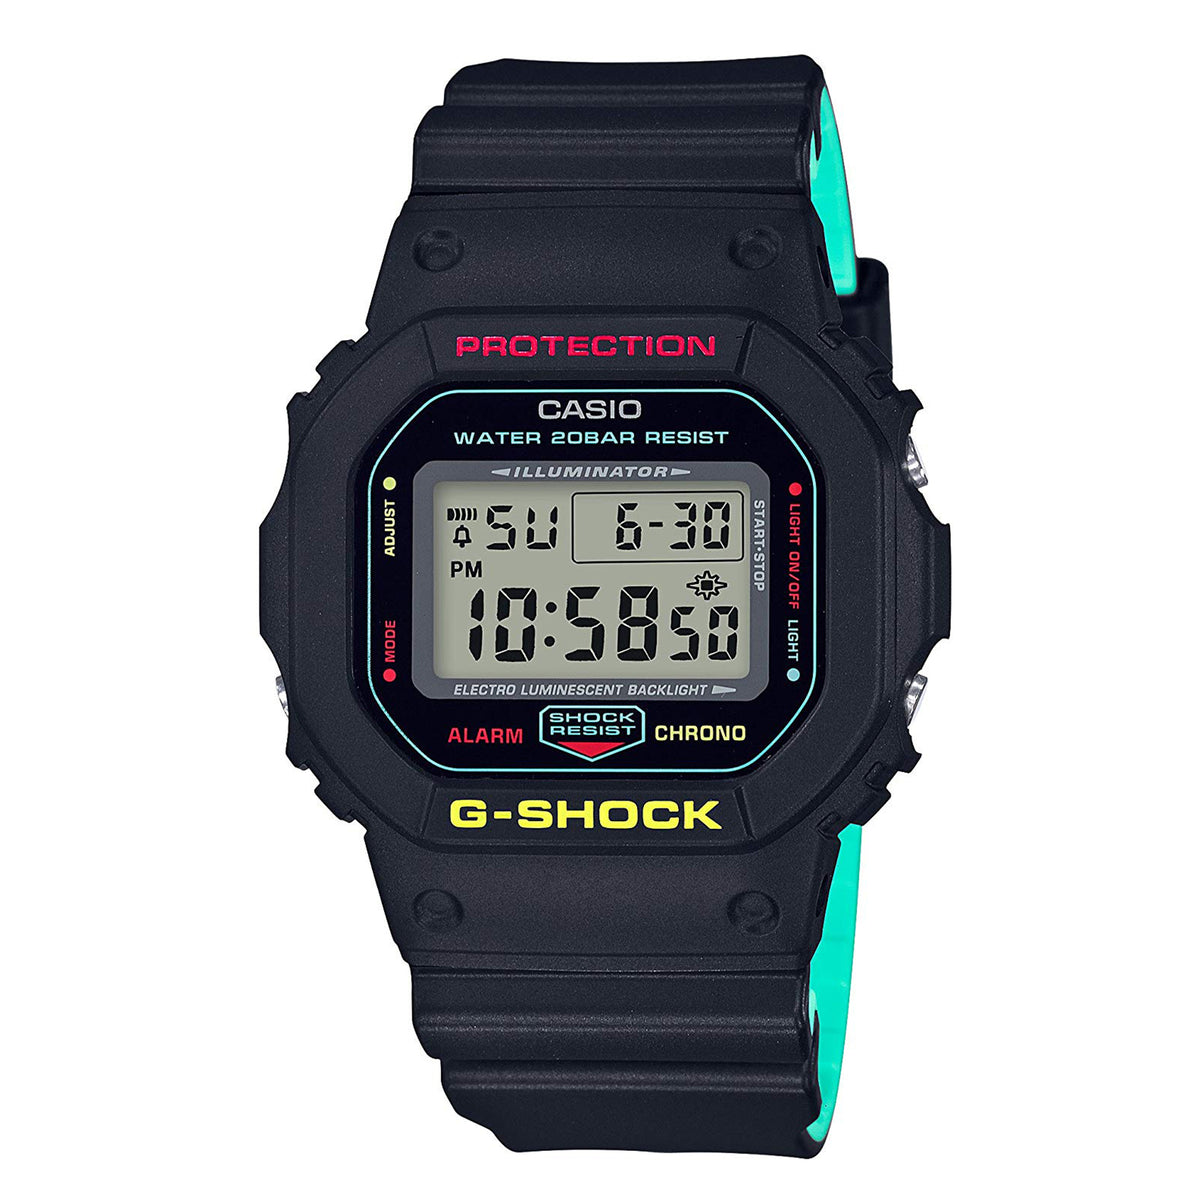 G-Shock: DW-5600CMB-1 Breezy Rasta Color Series Watch - Black